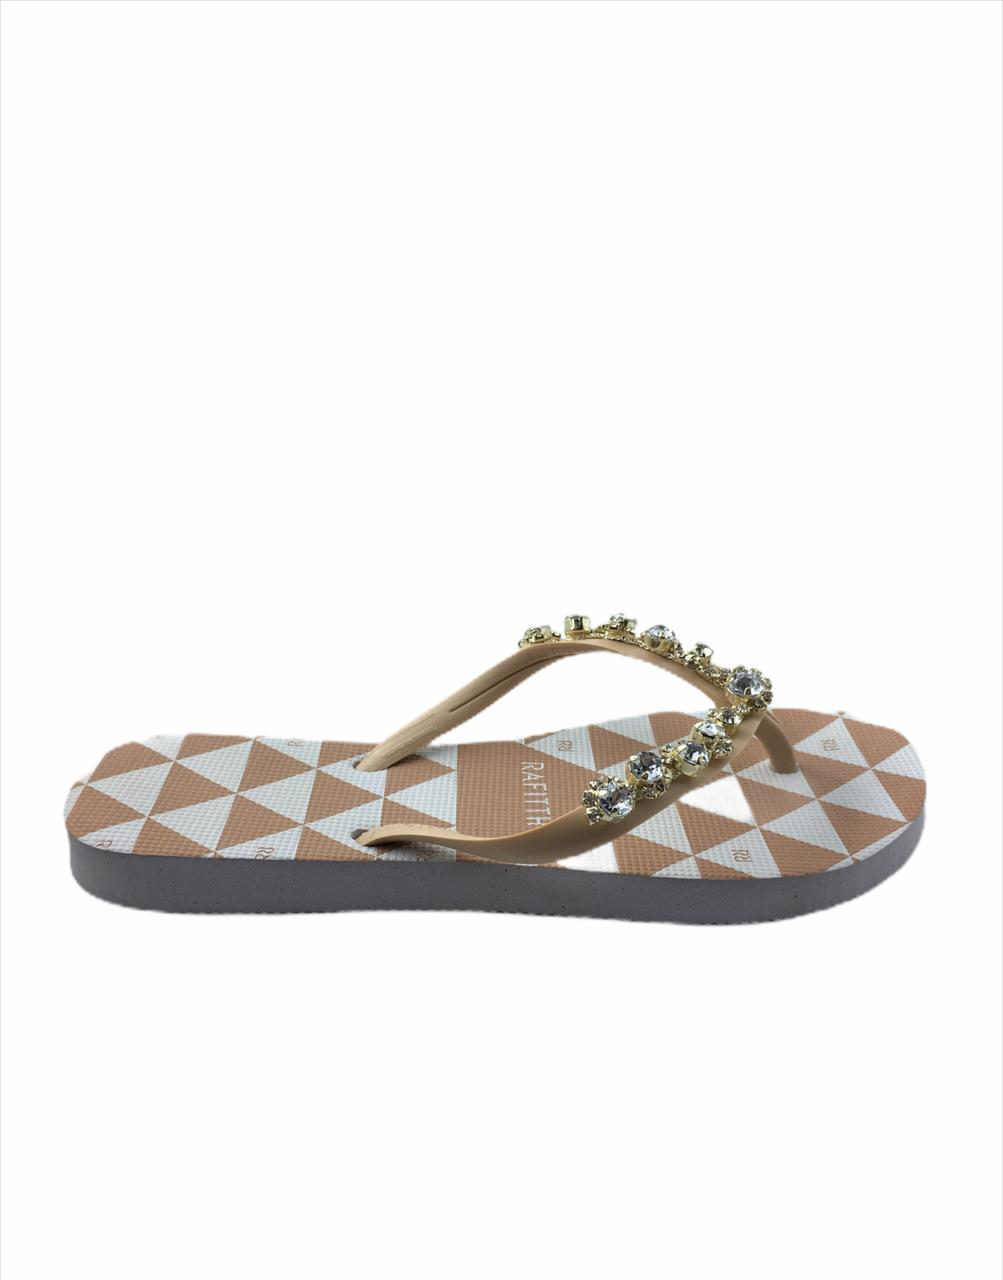 CHINELO FEMININO RAFITTHY RESORT